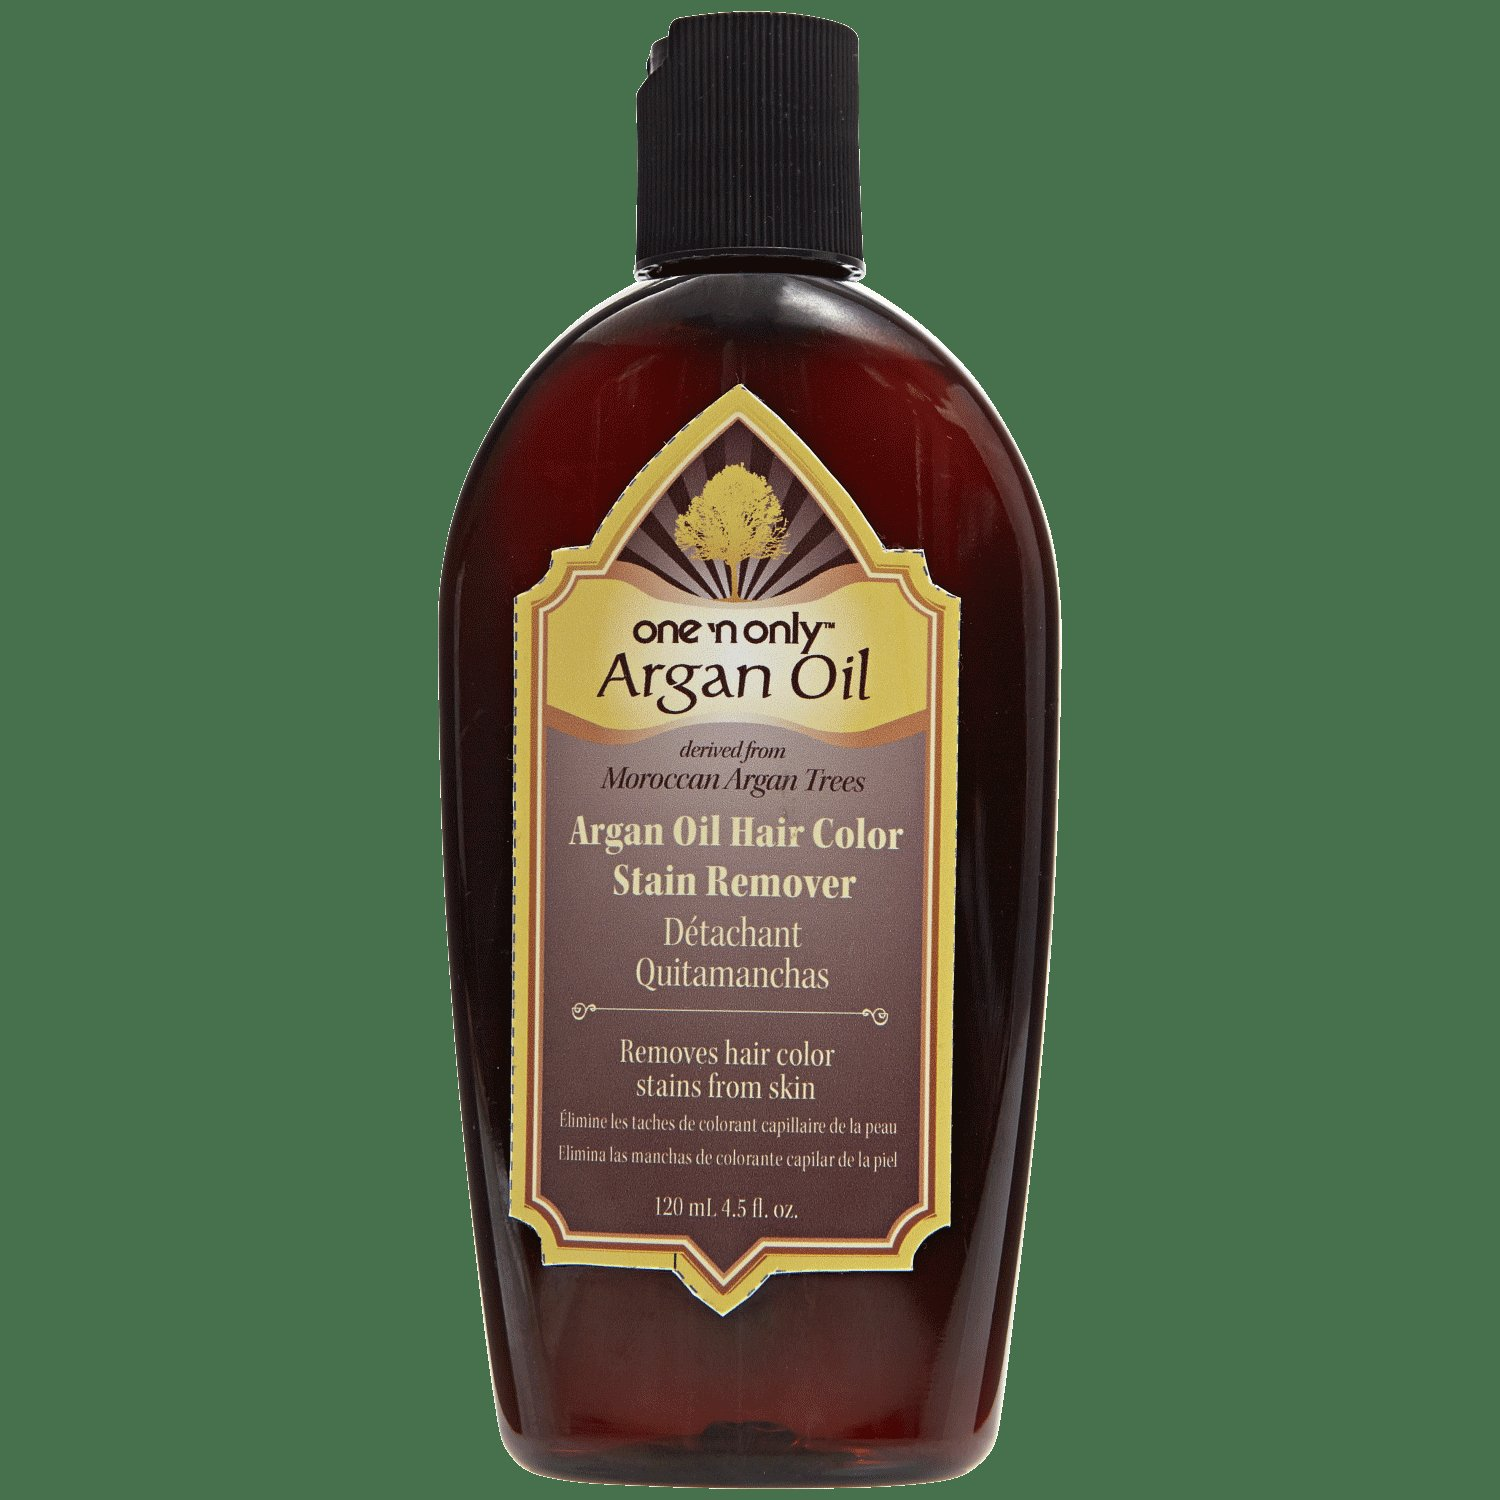 The Best One 'N Only Argan Oil Hair Color Stain Remover Pictures